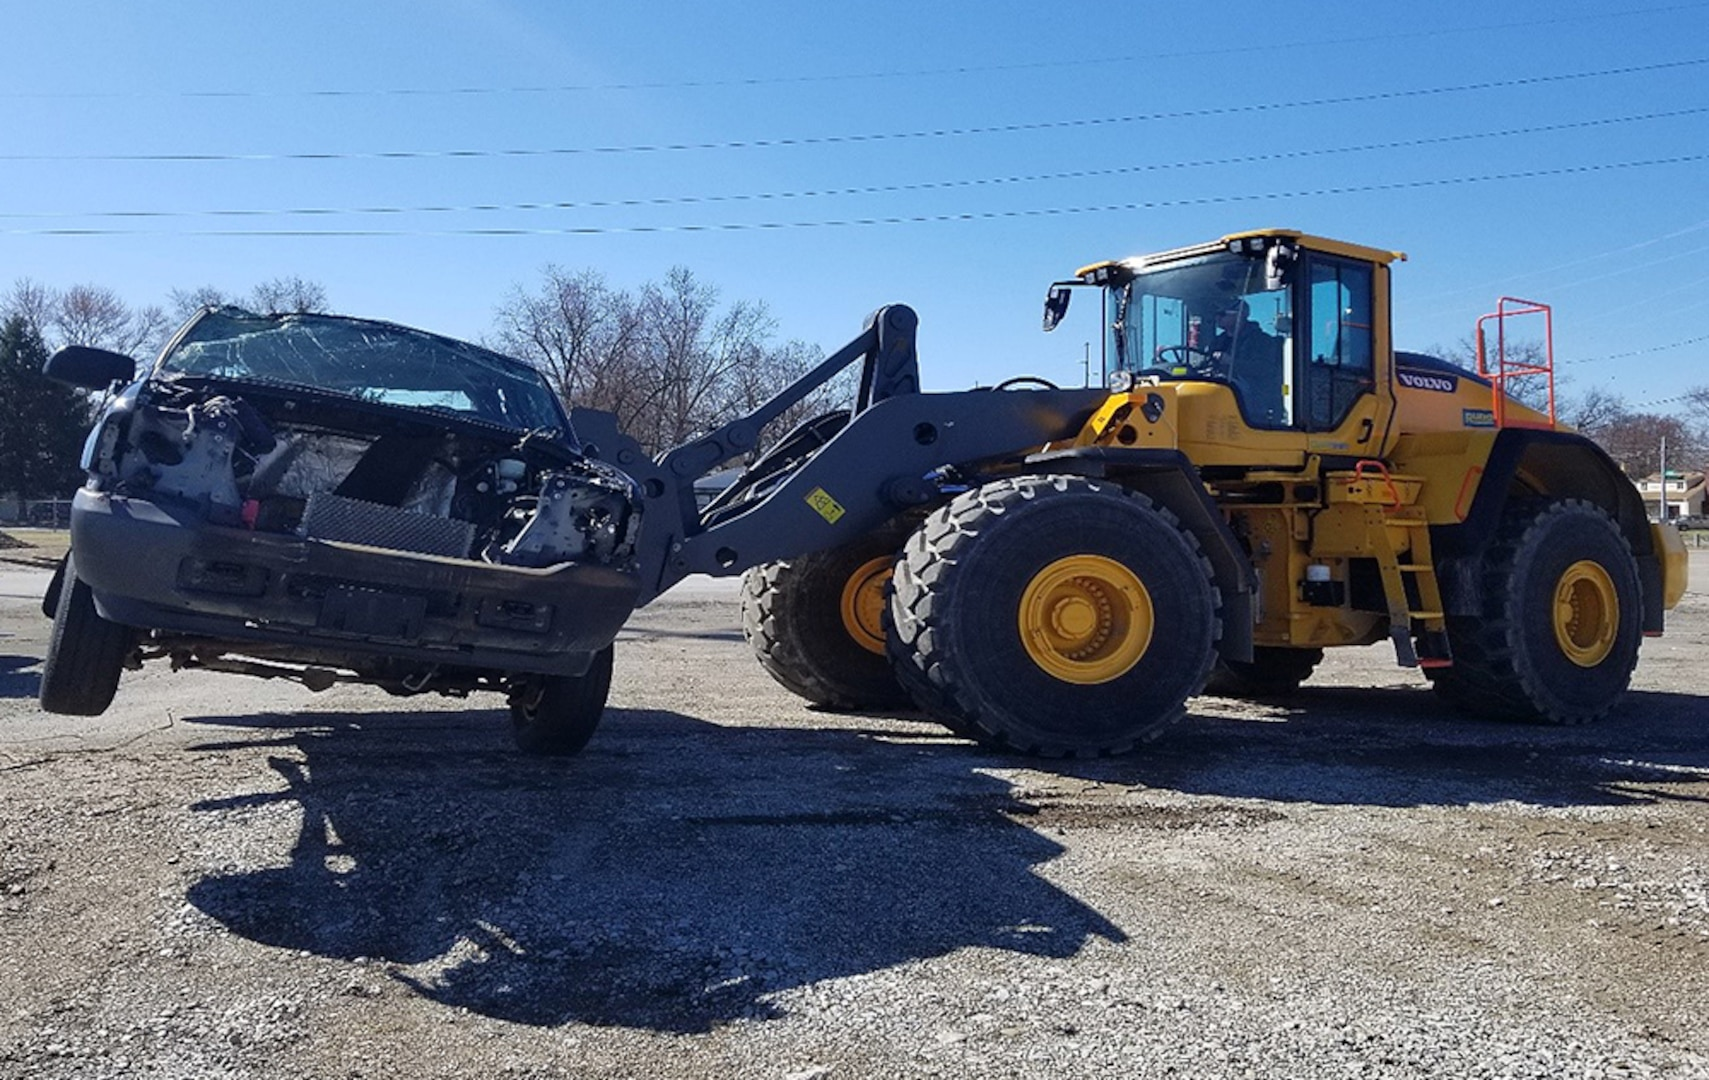 Material Examiner and Identifier Jared Vierheller maneuvers a scrap-pile Ford F-350 during advanced material handling equipment training held in Columbus, Ohio, in April. Vierheller is one of five Columbus-based agency employees currently earning on-the-job credit hours toward certification.